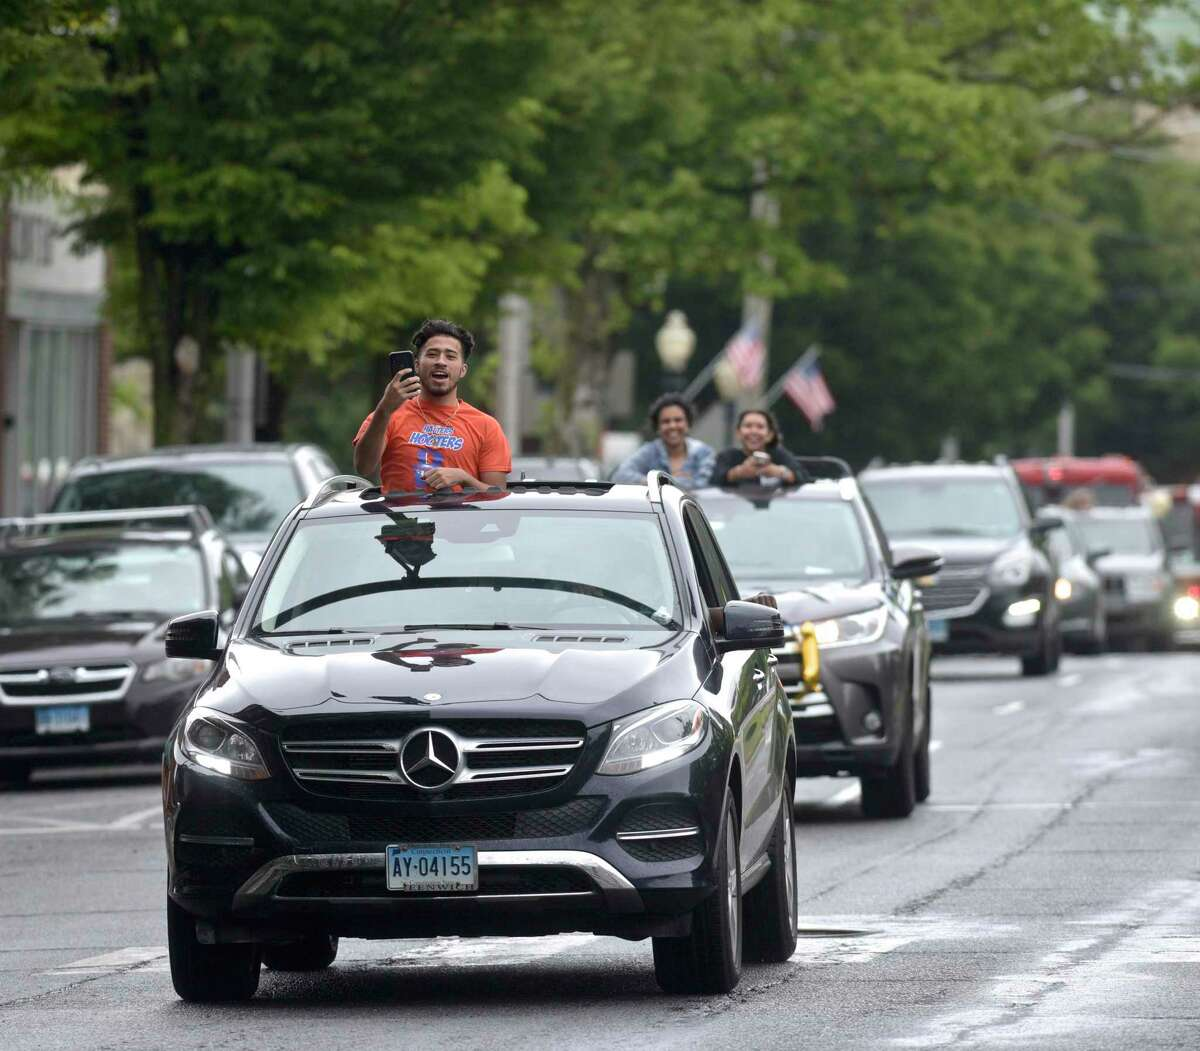 Danbury High School seniors enjoyed a car parade through downtown organized by the schools Parent Teacher Organization on Thursday afternoon. The parade included decorated cars, fire and police vehicles and was escorted by the Danbury Police Department motorcycle unit. June 3, 2021, in Danbury, Conn.